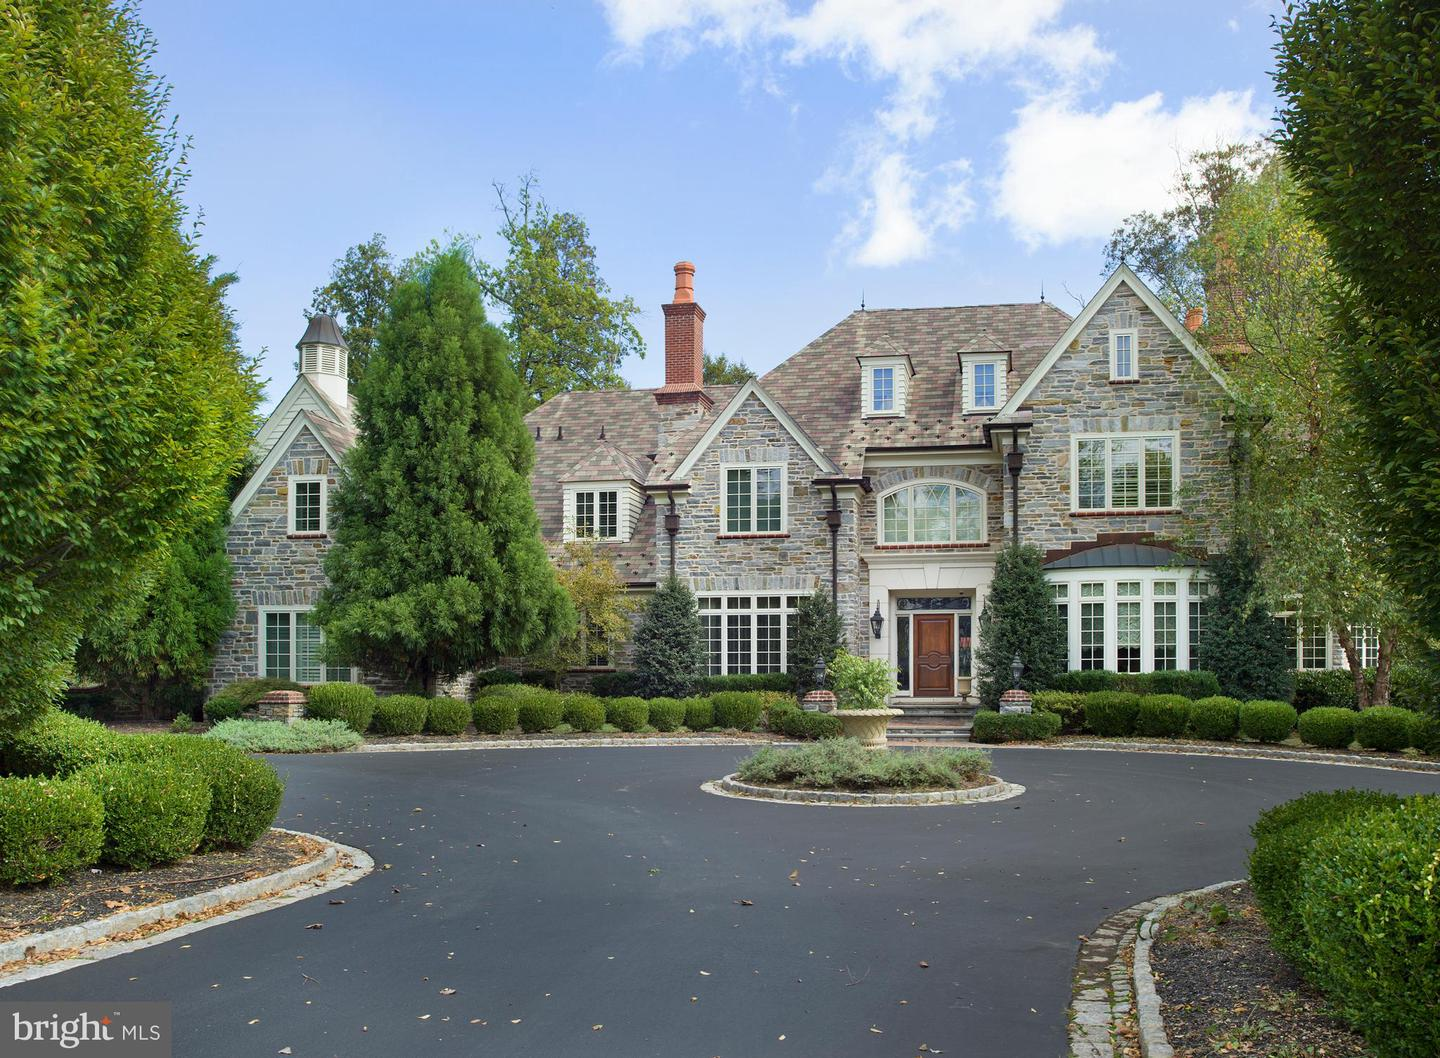 60 Farrier Lane Newtown Square, PA 19073